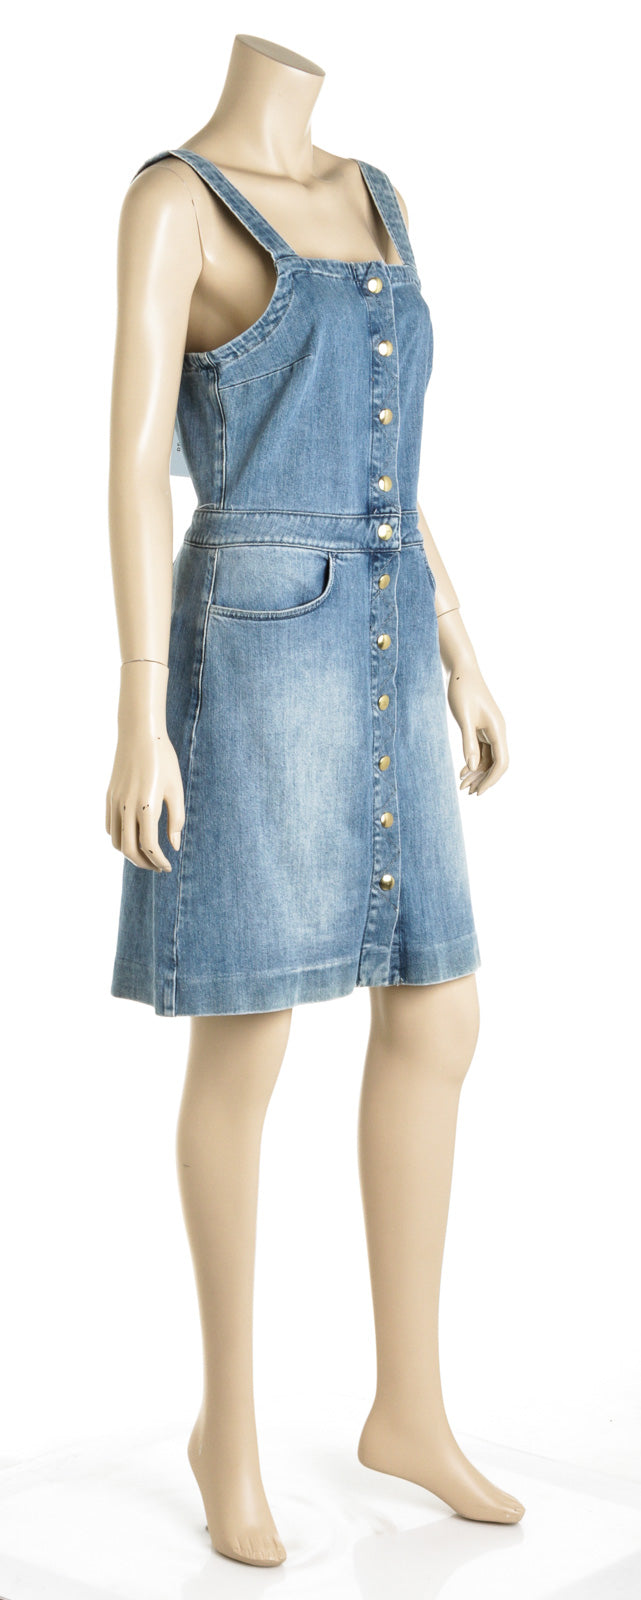 Frame Claire Denim Dress (Size M)